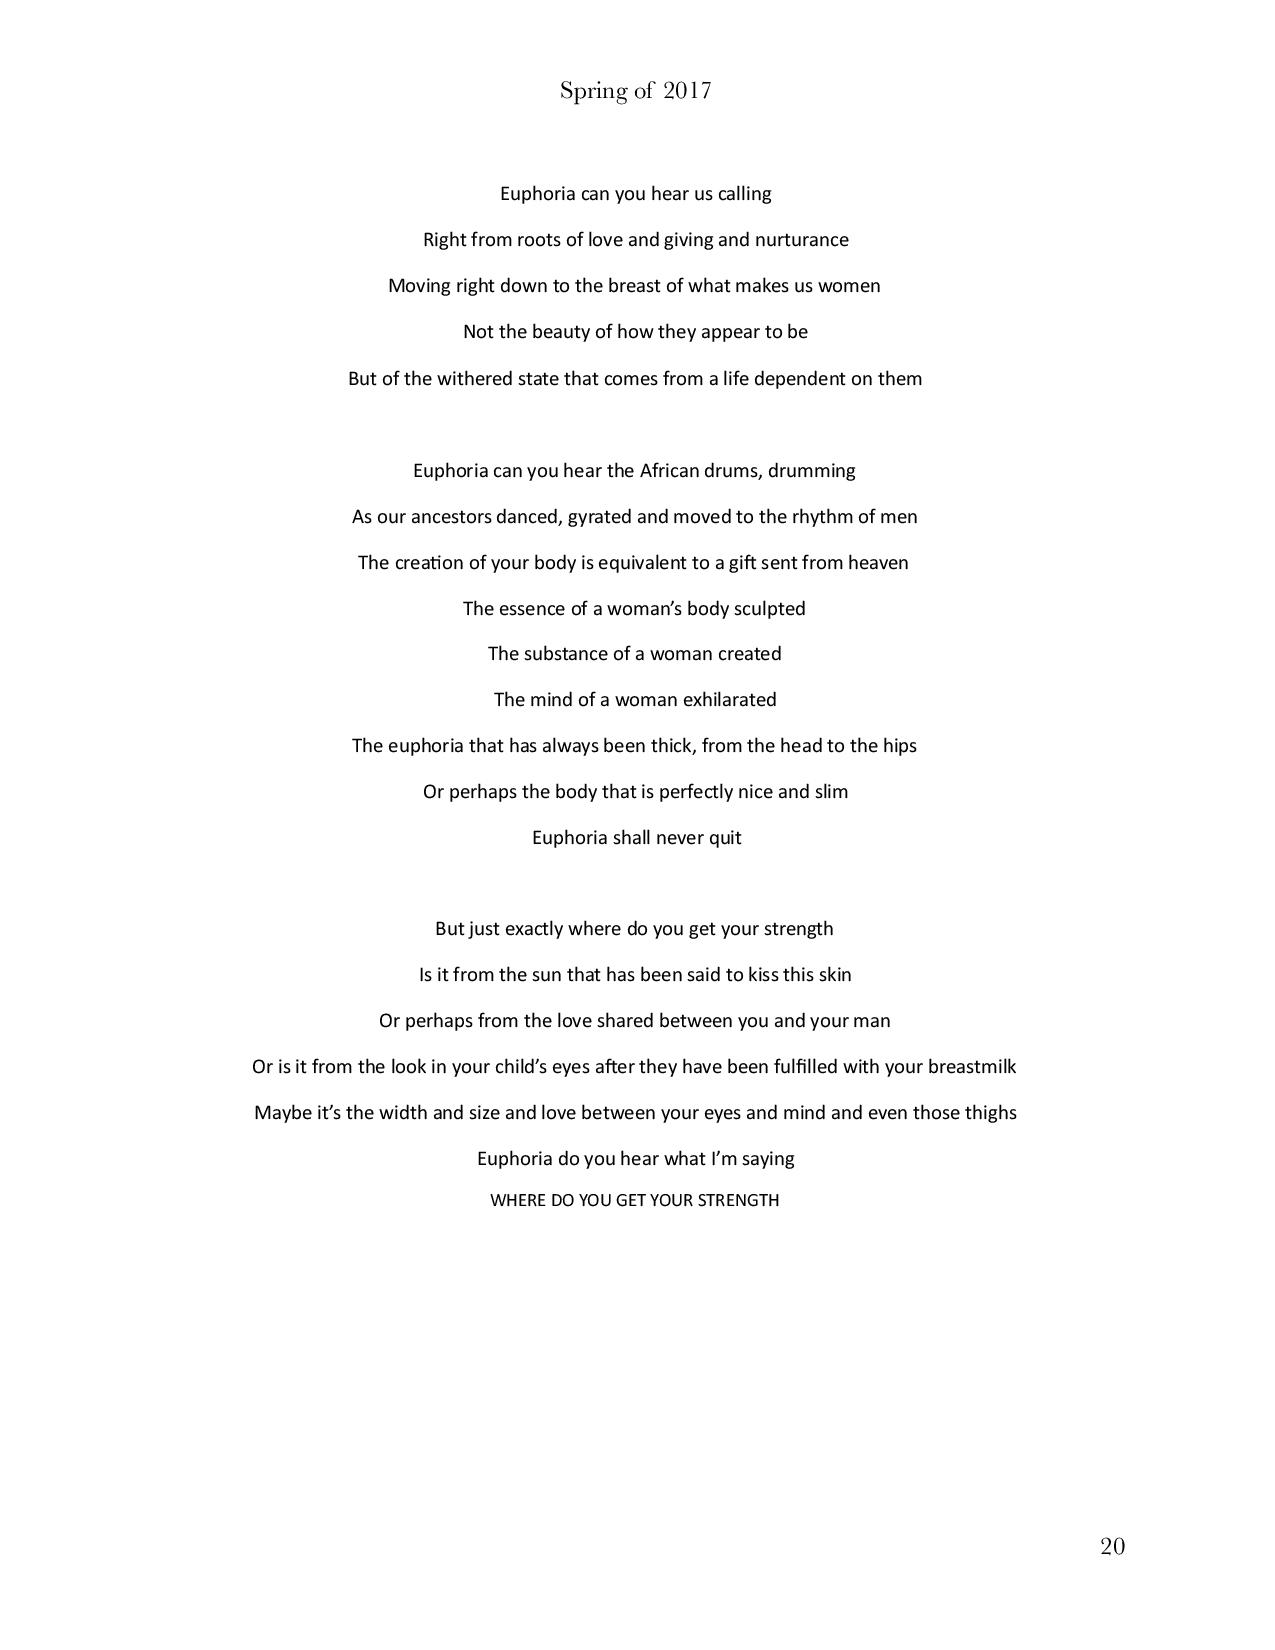 The Orator  (2)-page-020.jpg